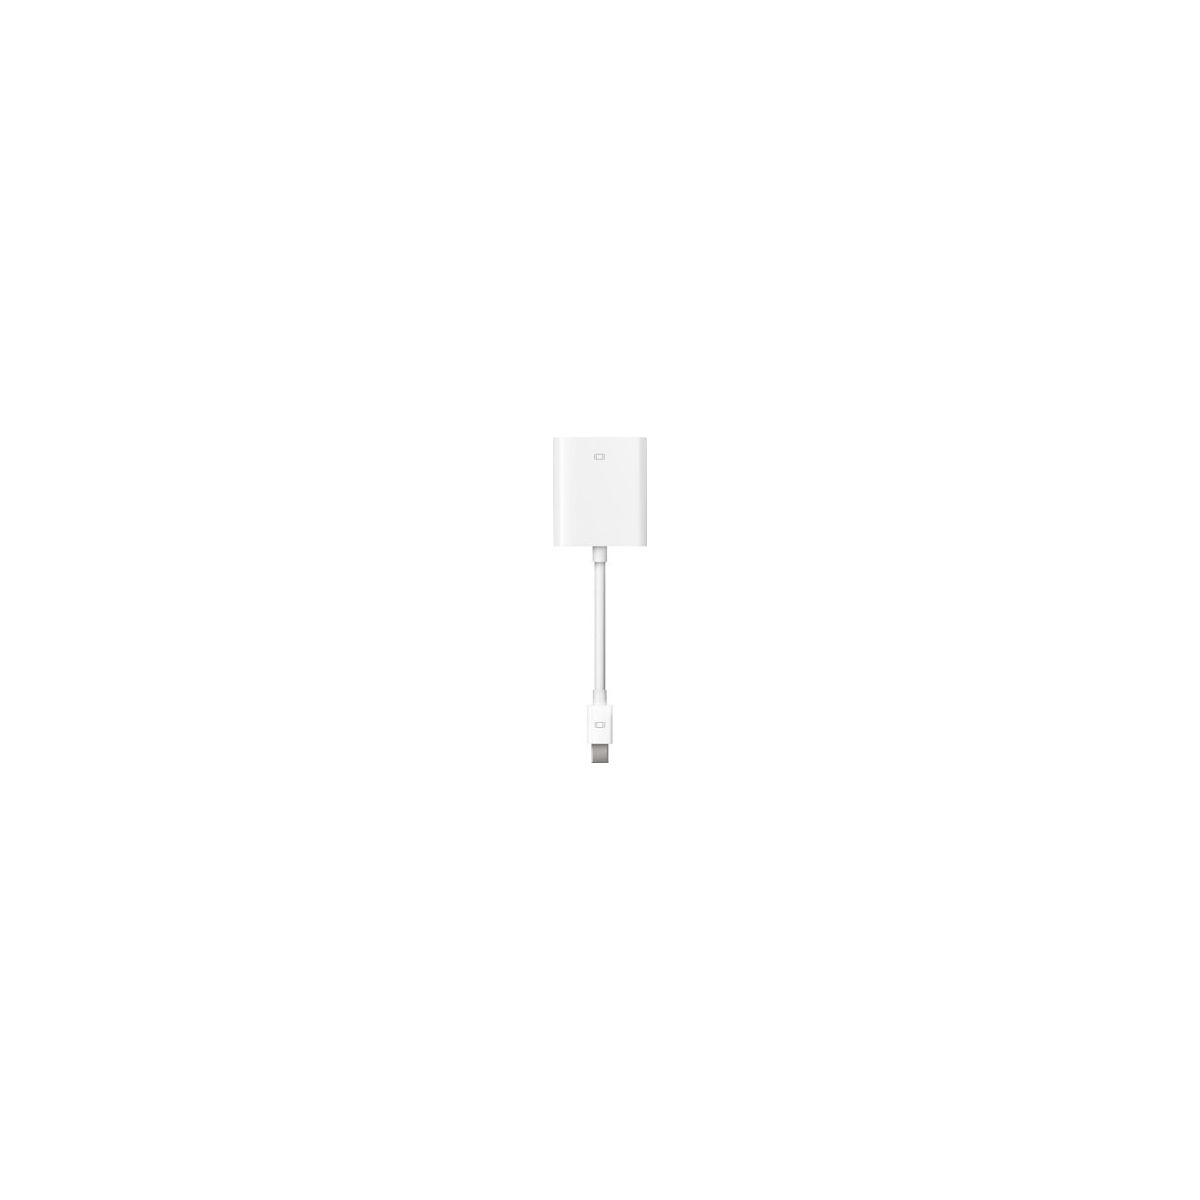 Adaptateur apple mni display port vers v (photo)